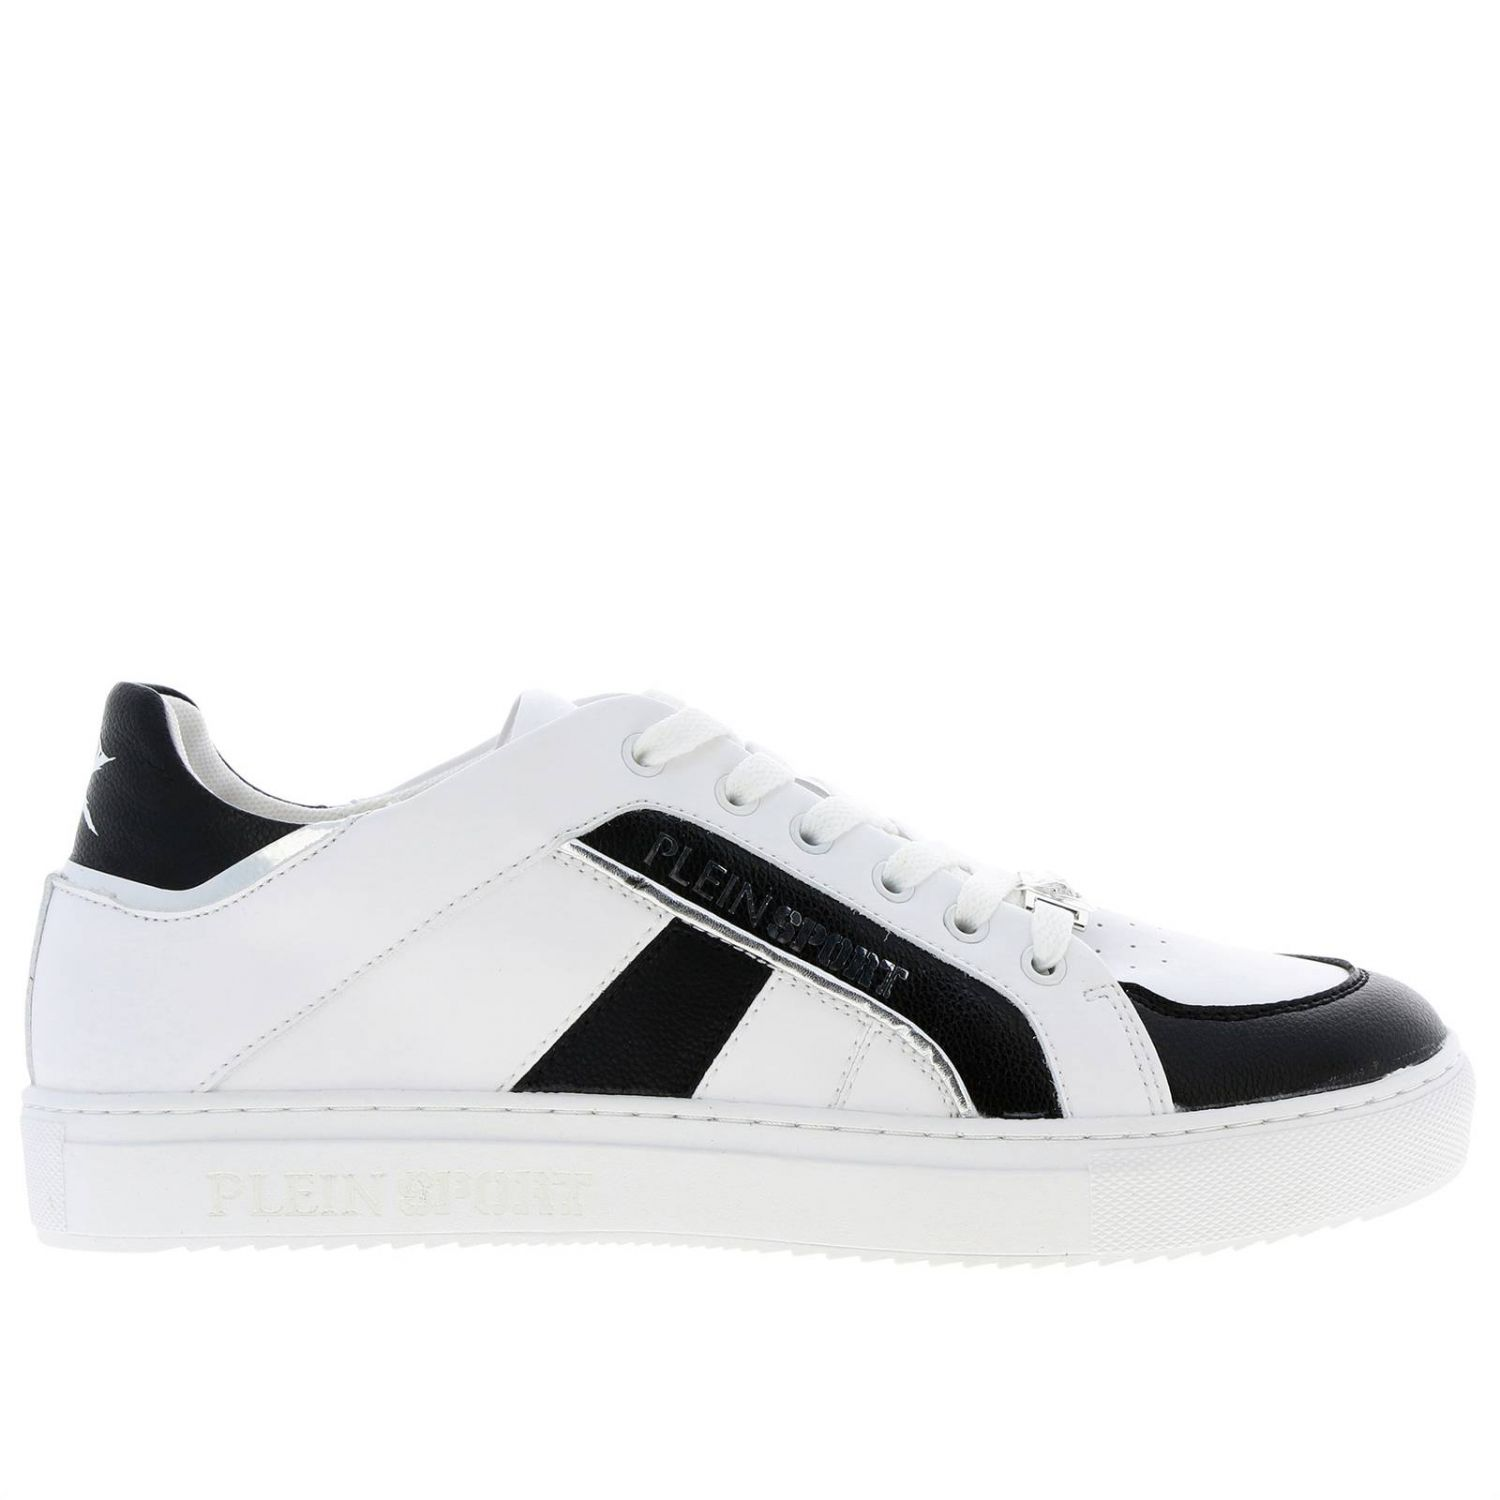 Lo-top Sneakers Cross Tiger Plein Sport in bicolor leather with logo white 1